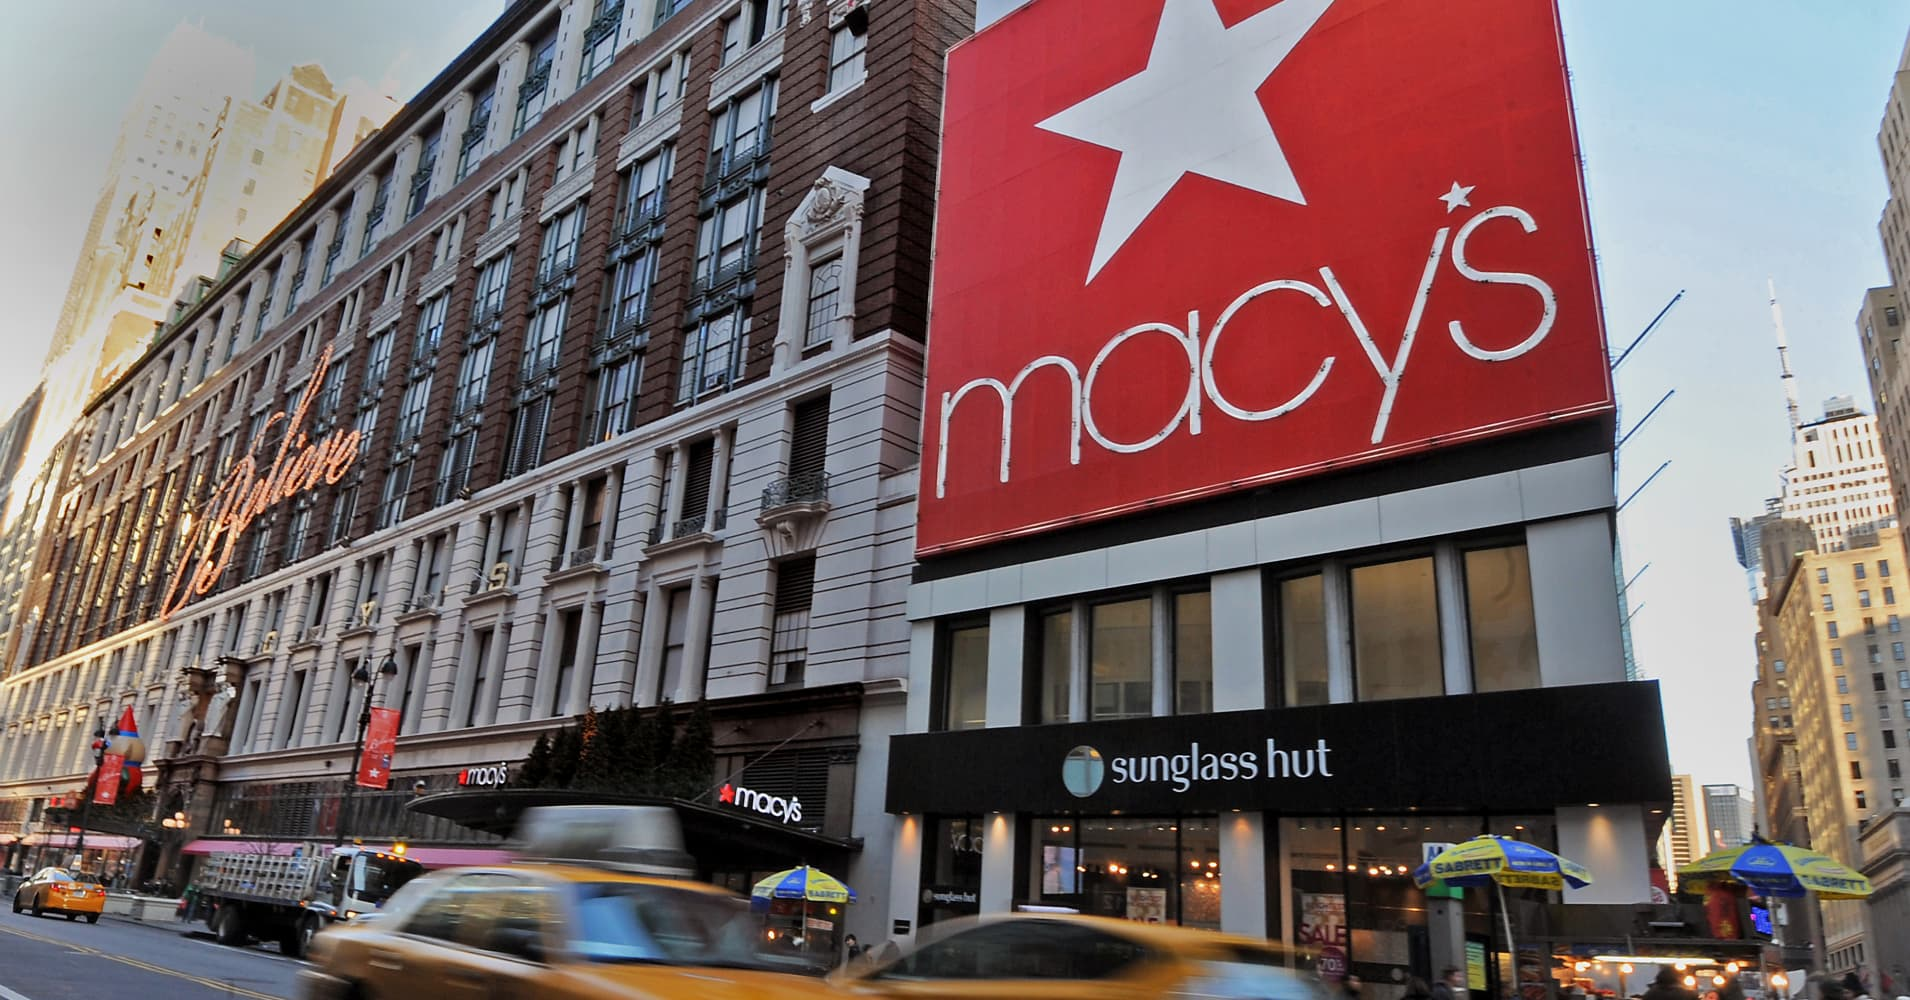 Macy's closing 14 stores as part of restructuring